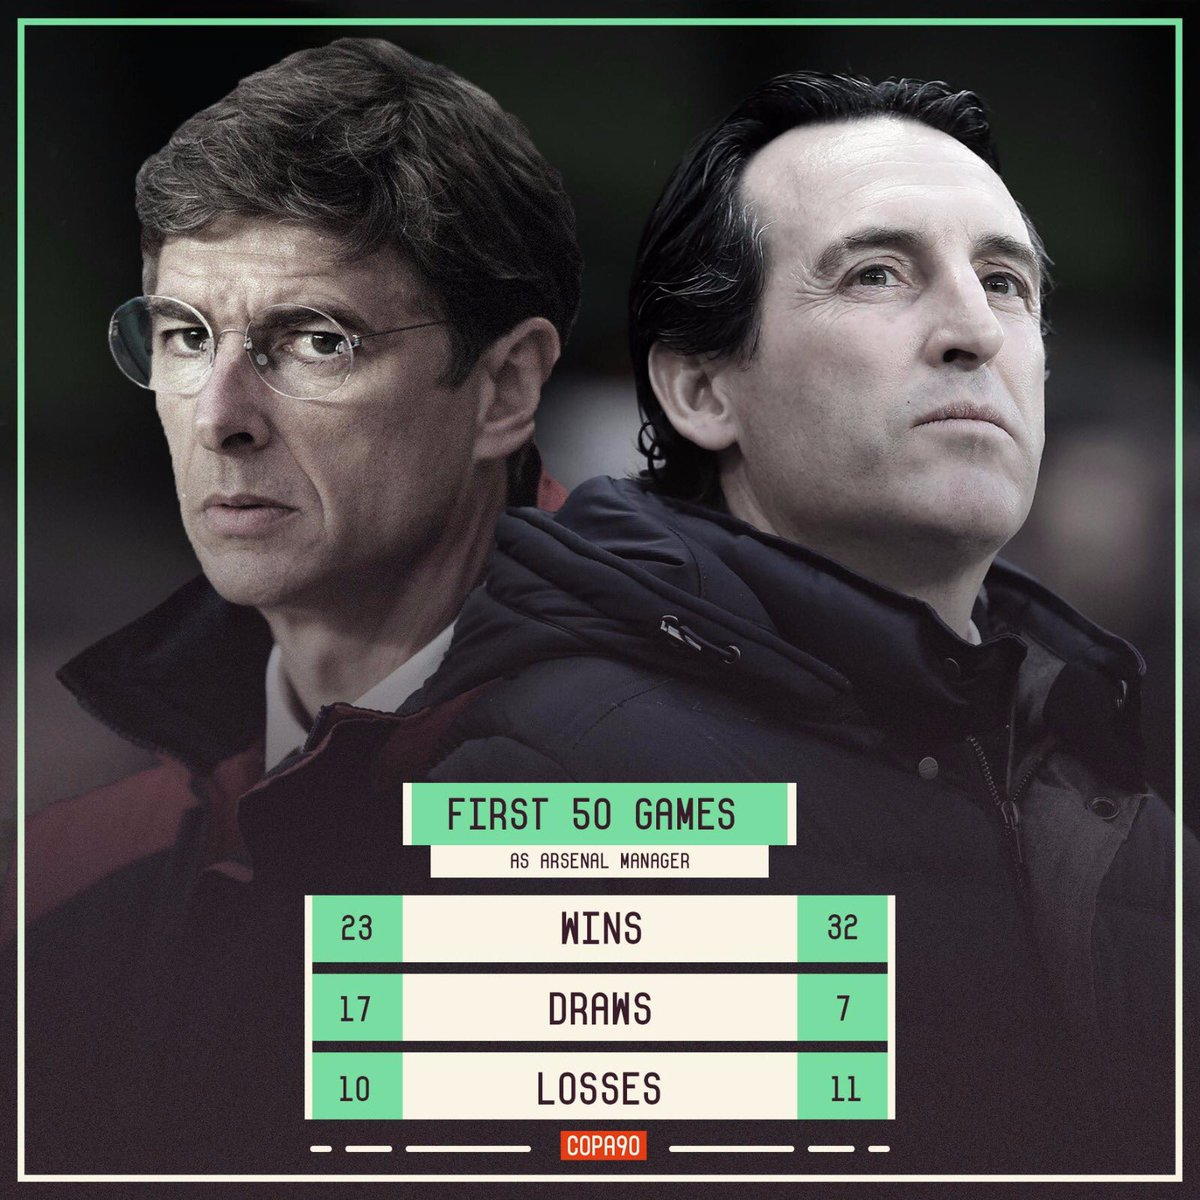 Has Unai Emery's spell at Arsenal been underrated so far? 🤔